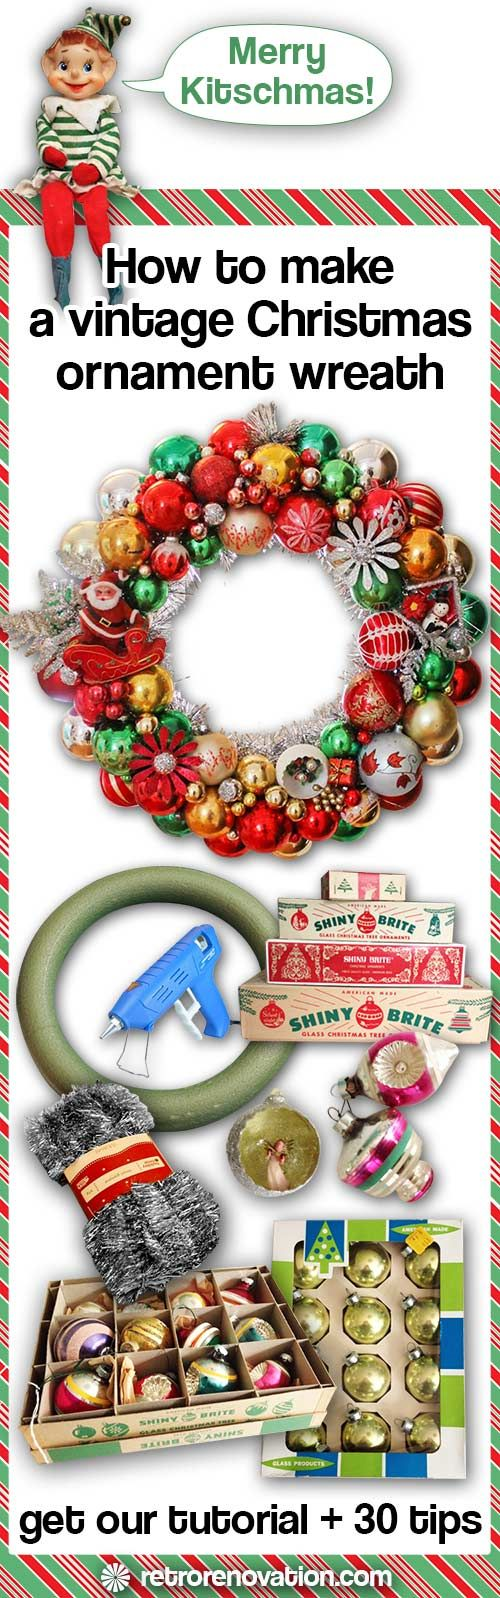 How to make vintage ornament wreath Now that I have a